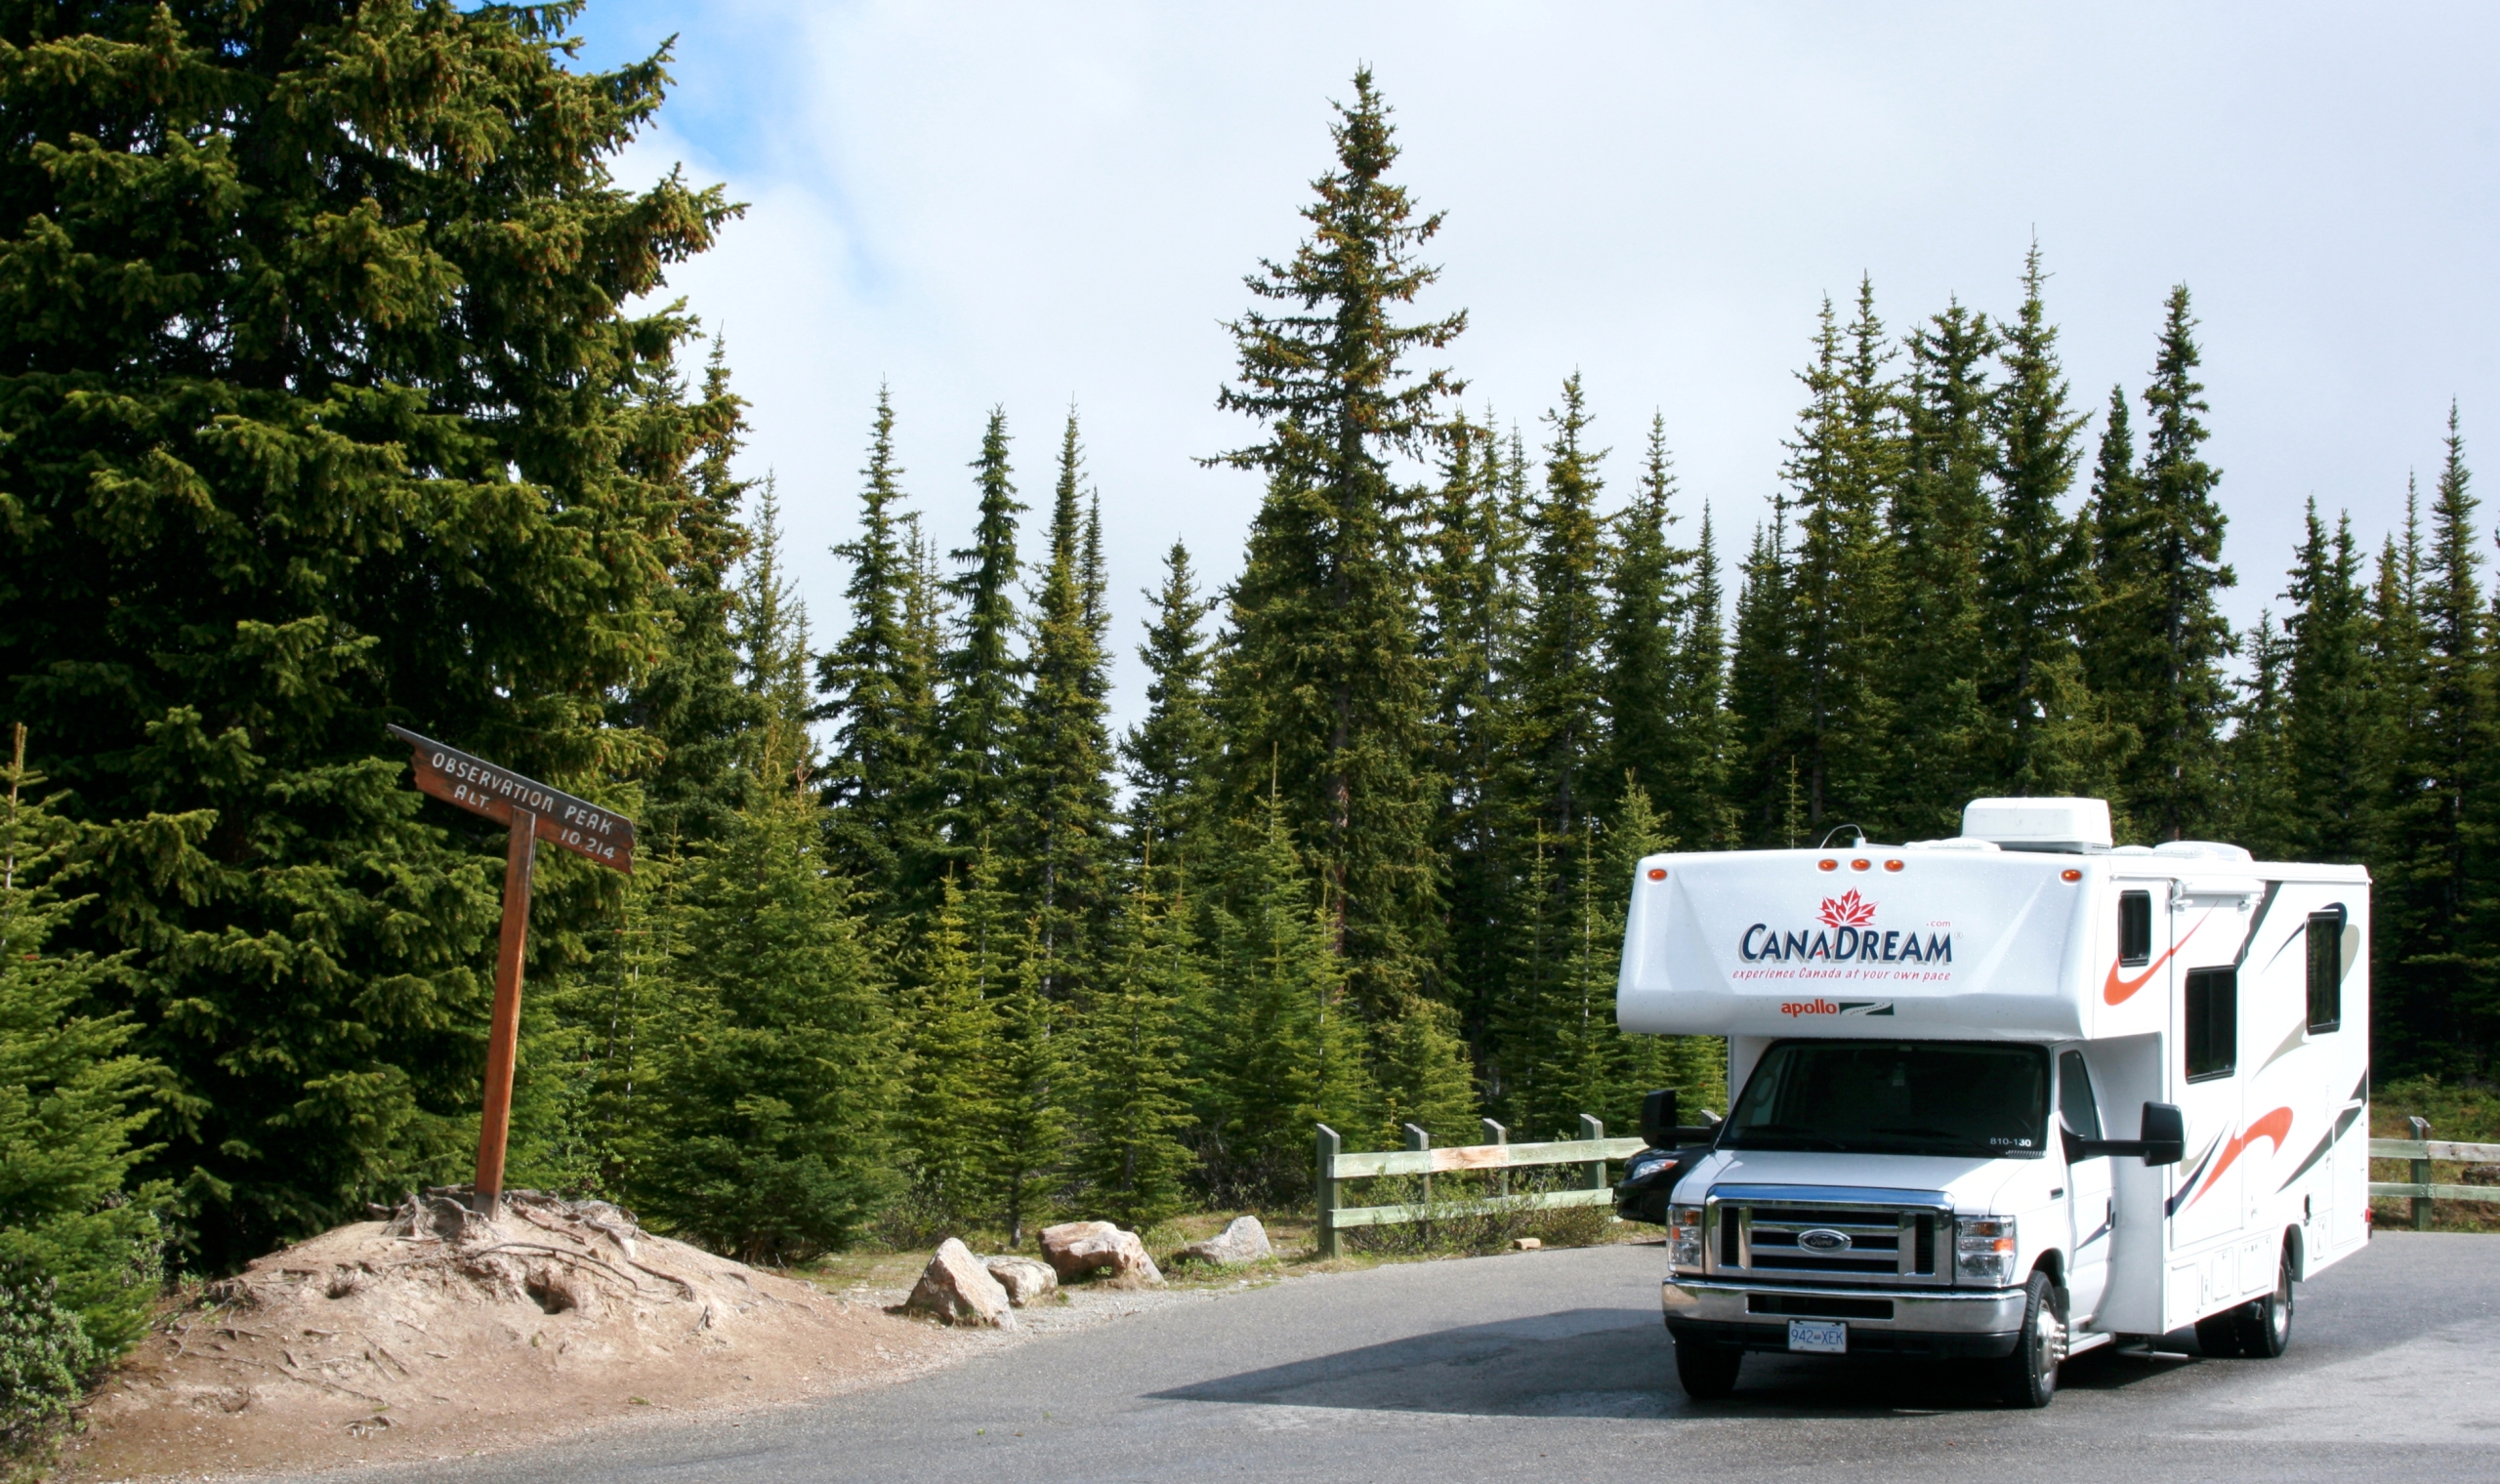 Canadream maxi motorhome canadian affair for Rocky waters motor inn fire damage